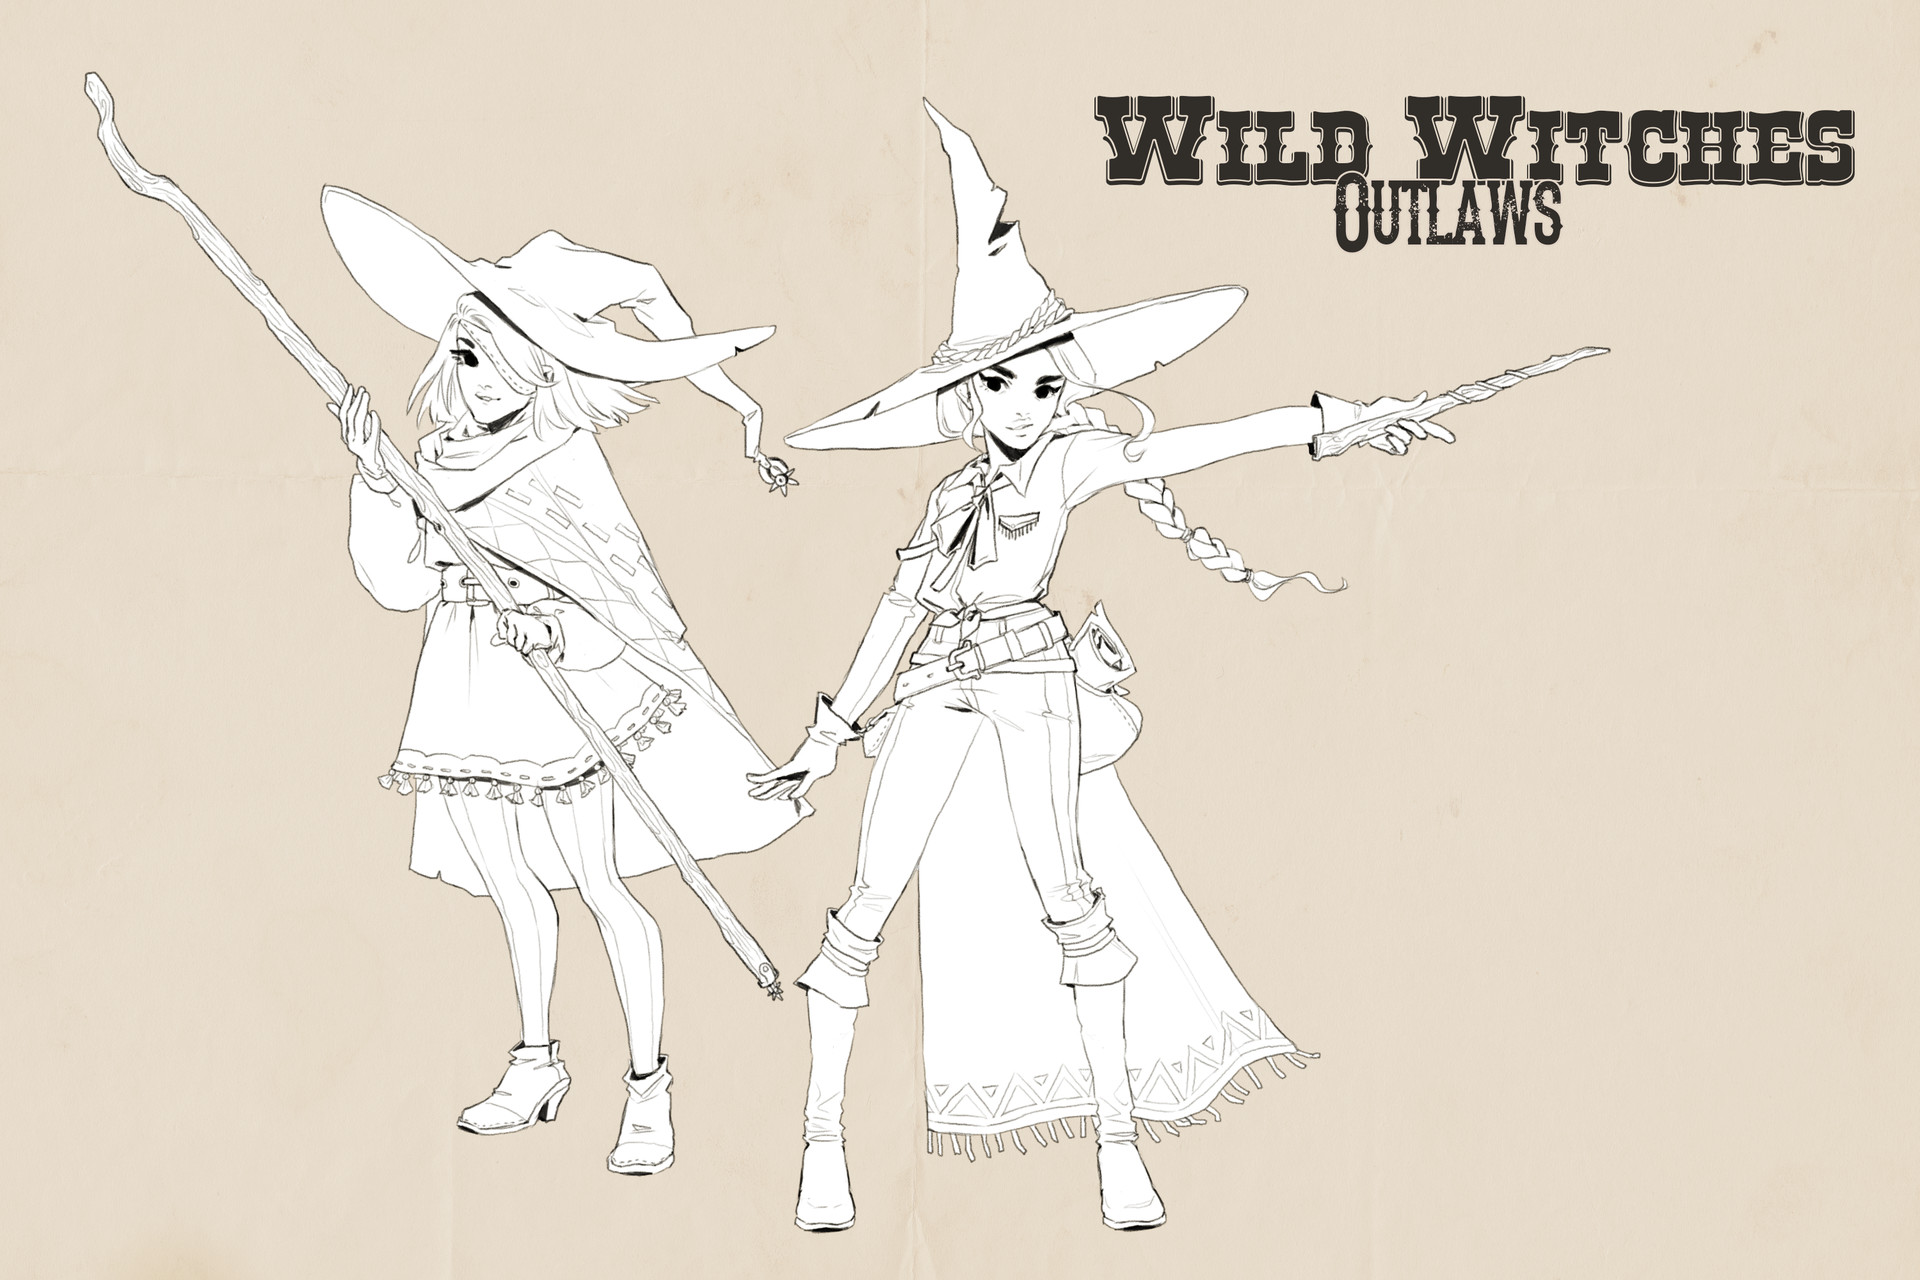 Dani kruse aswildwest outlaws lineart